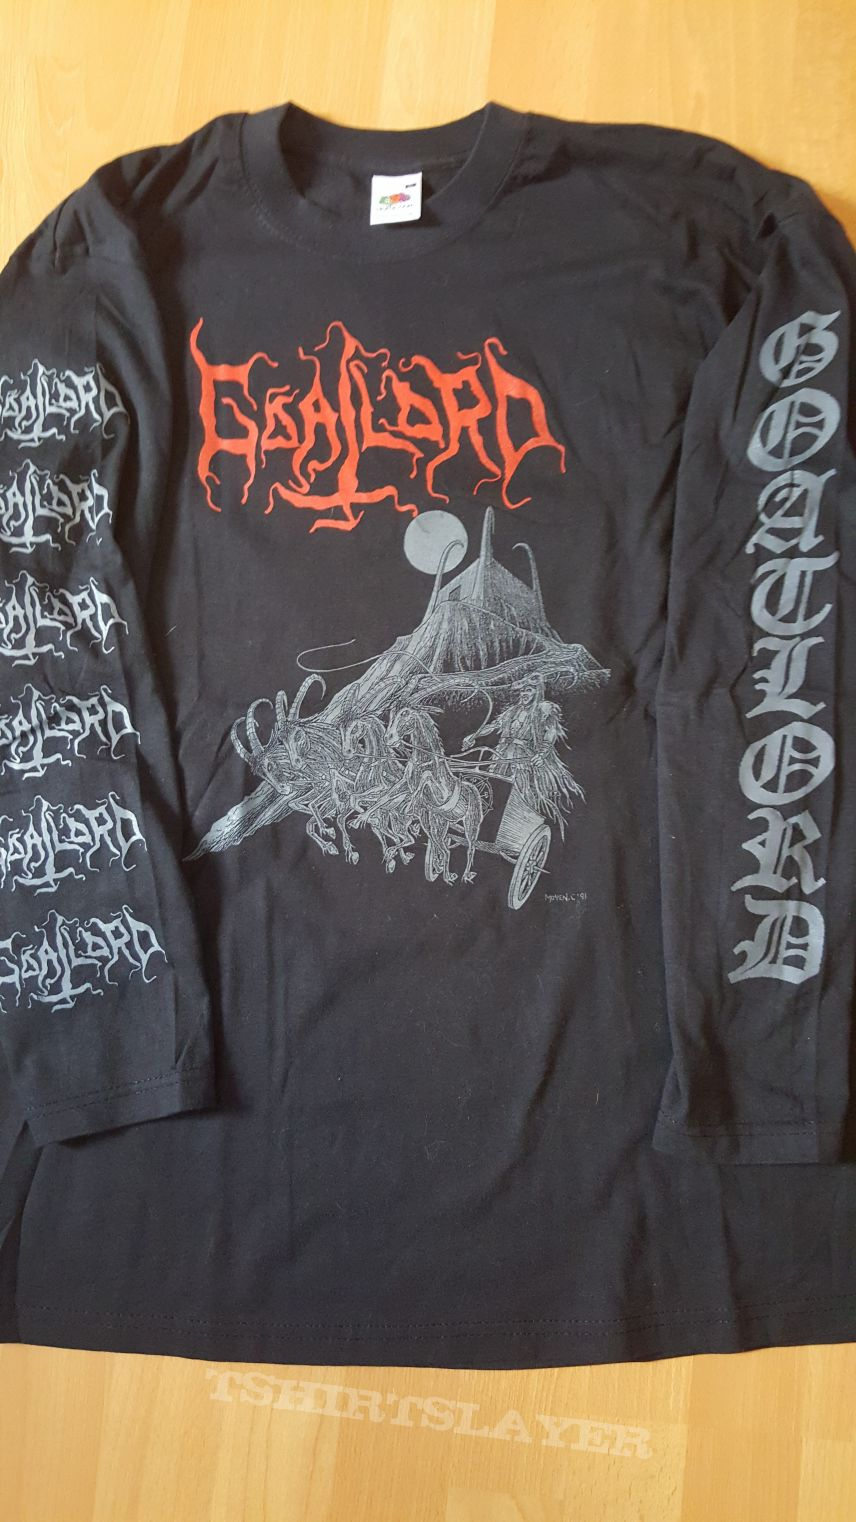 Goatlord - Reflections Of The Solstice LS